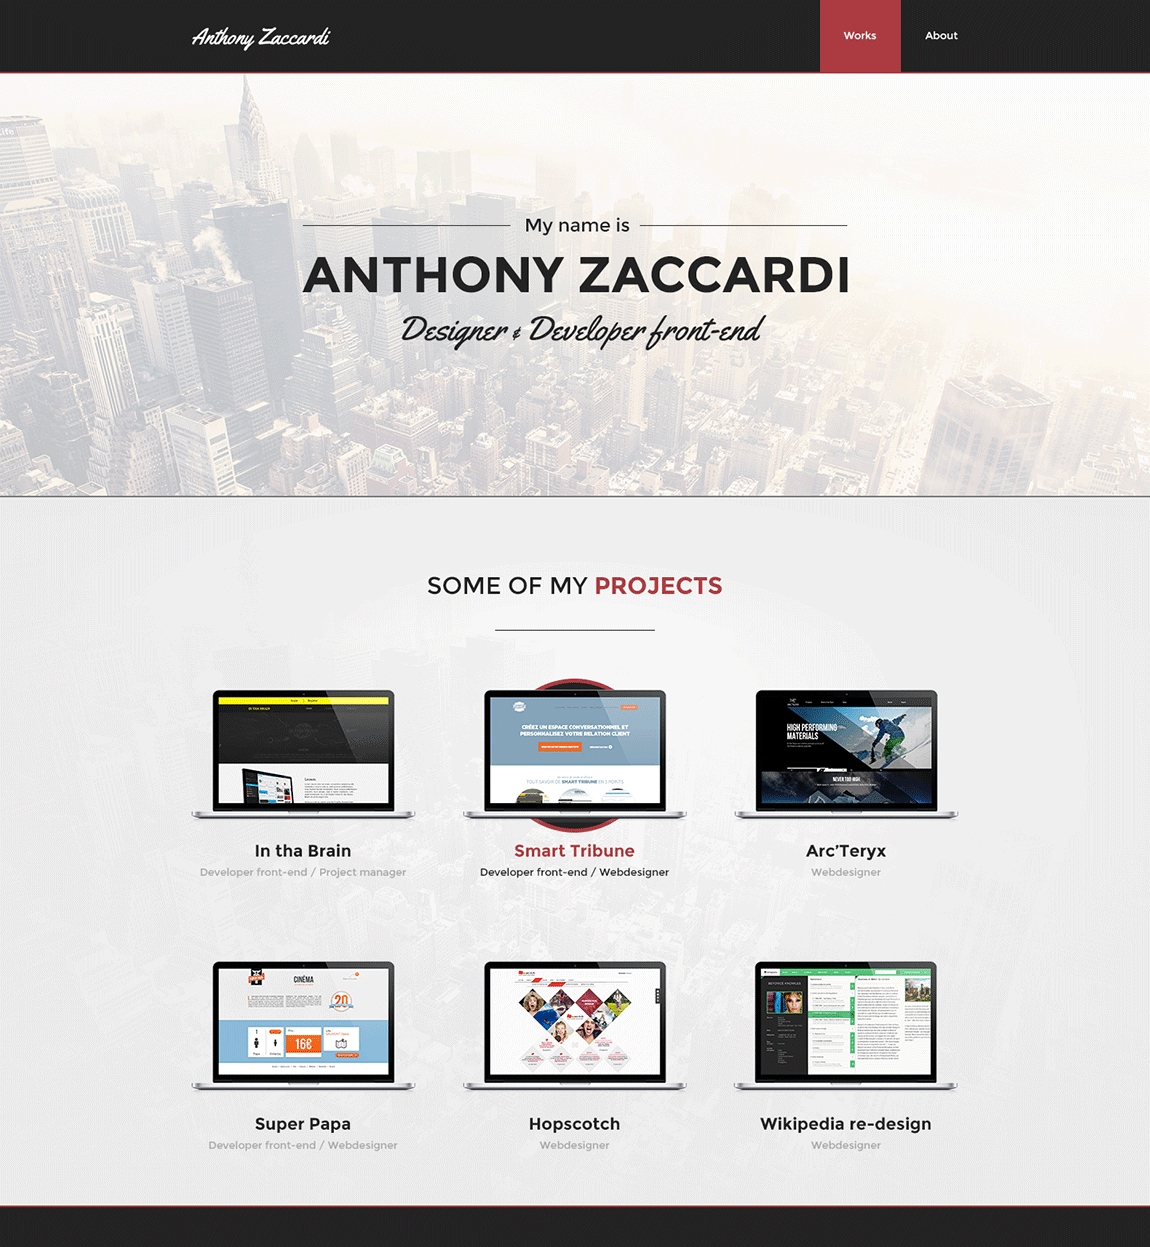 Anthony Zaccardi Website Screenshot